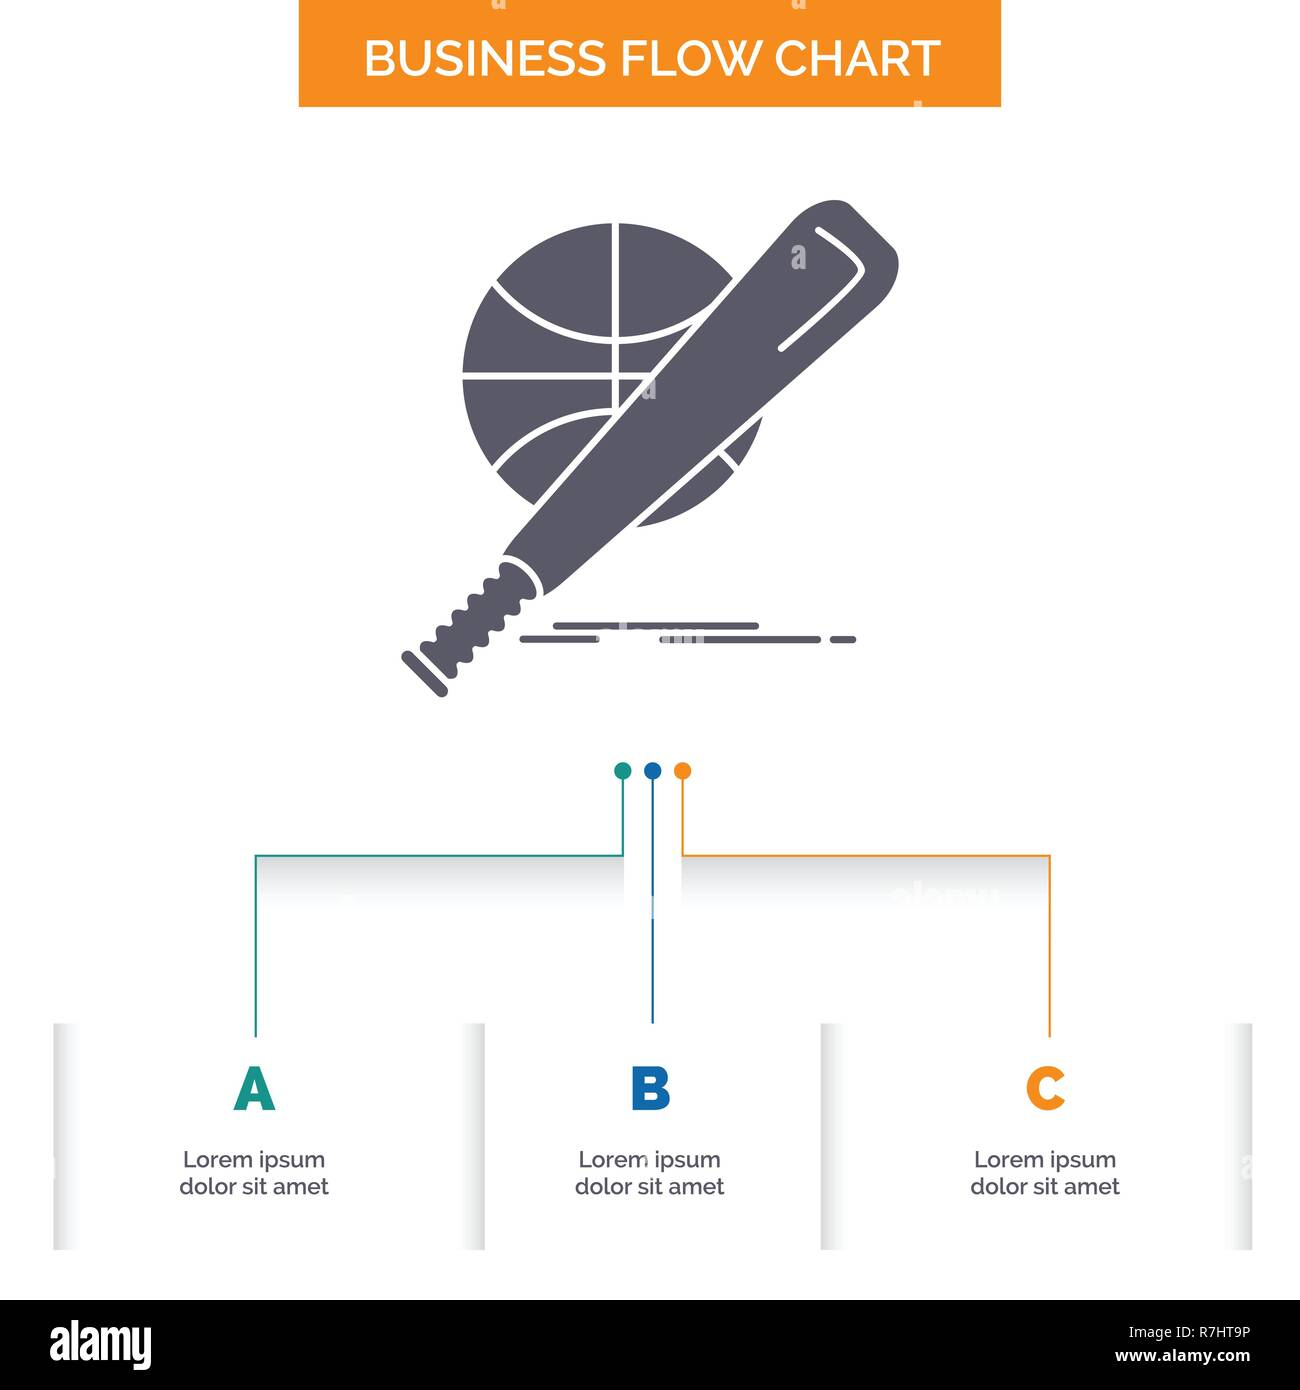 hight resolution of baseball basket ball game fun business flow chart design with 3 steps glyph icon for presentation background template place for text